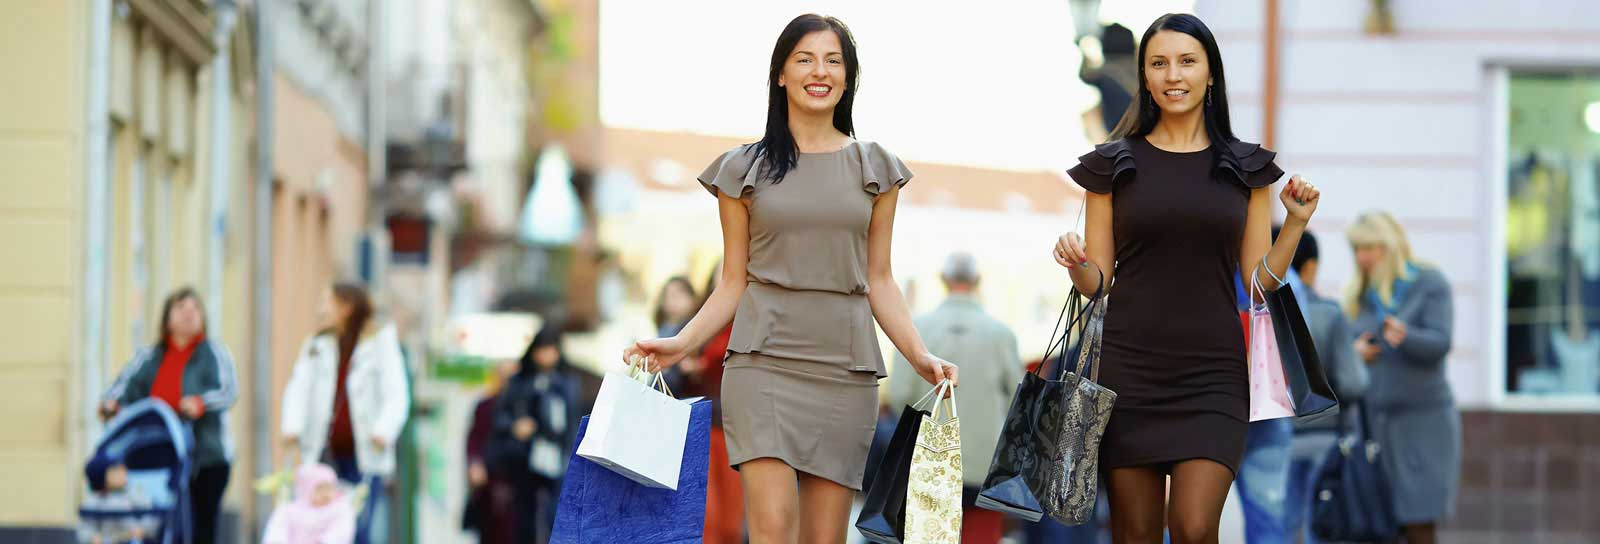 Santana Row, California